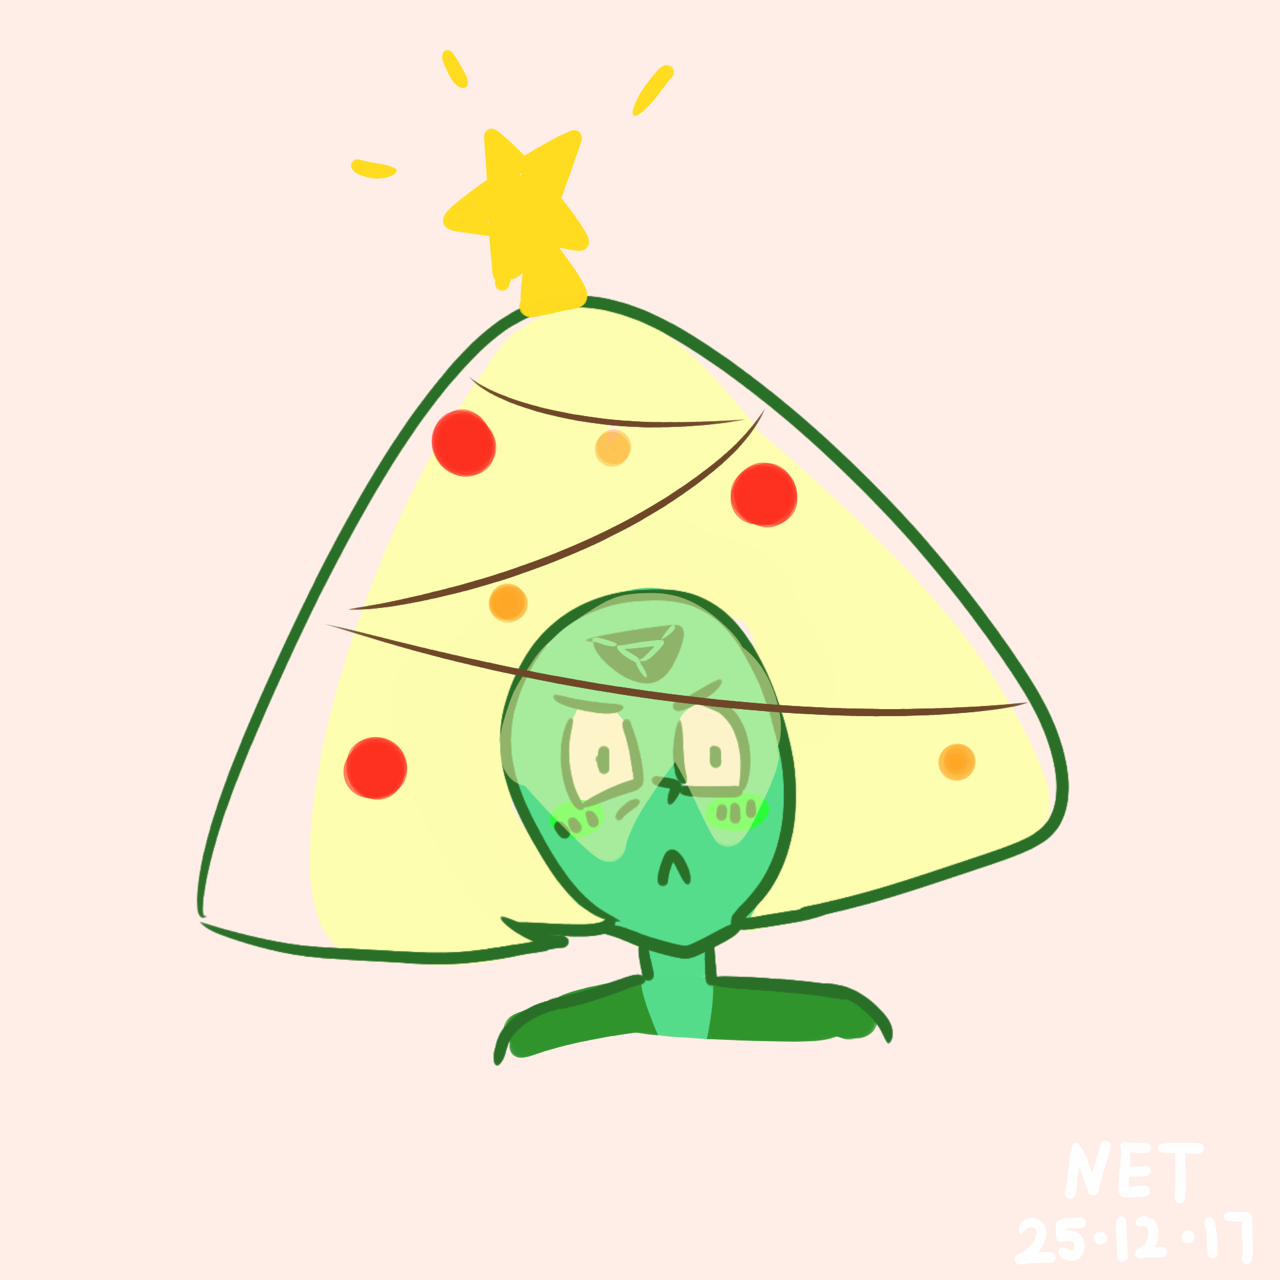 steven tried to get the gems into the holiday spirit…they like decorating the best